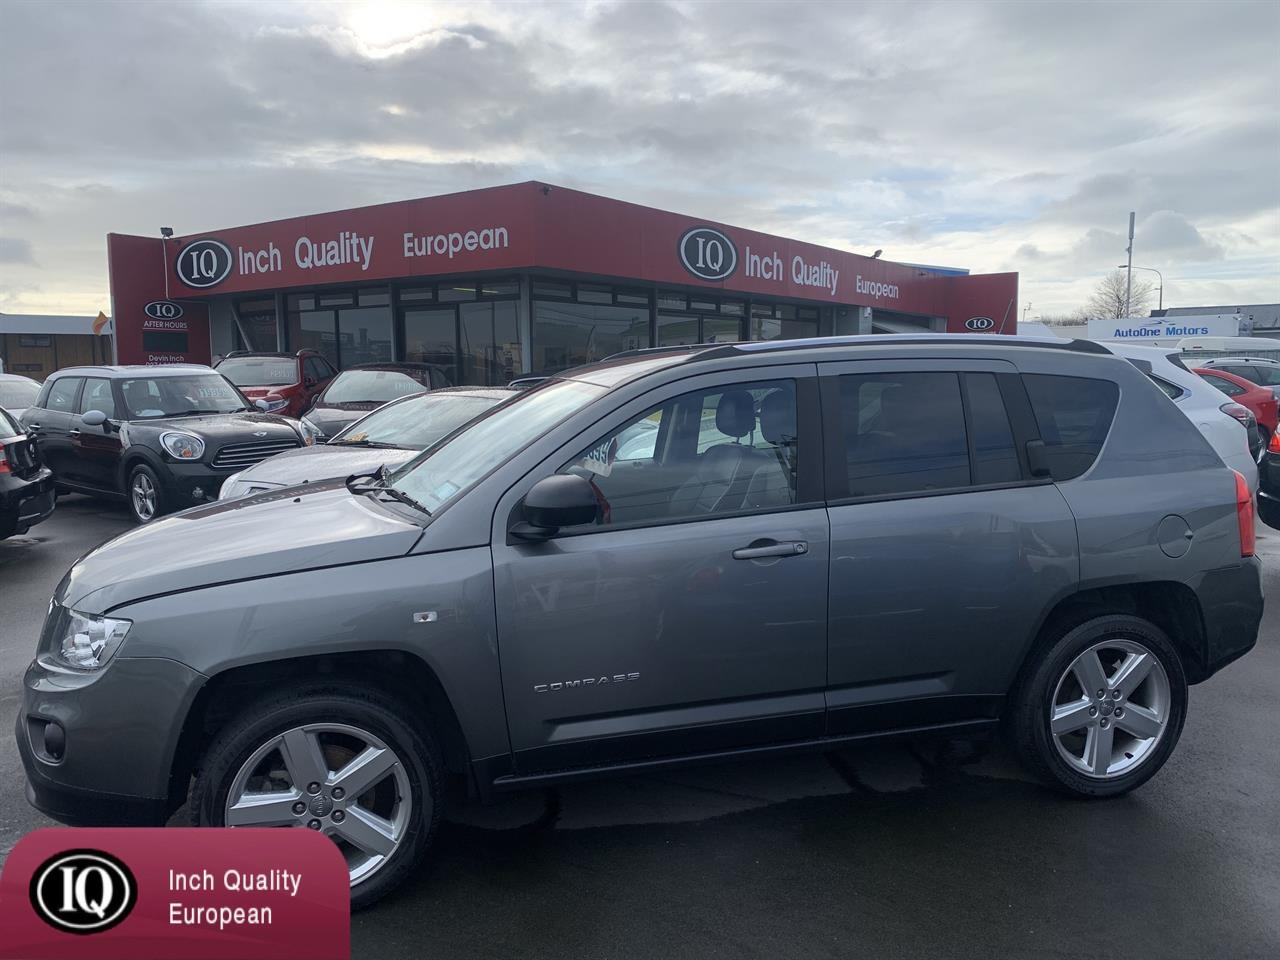 image-3, 2013 Jeep Compass 2.4 NZ NEW 4WD at Christchurch